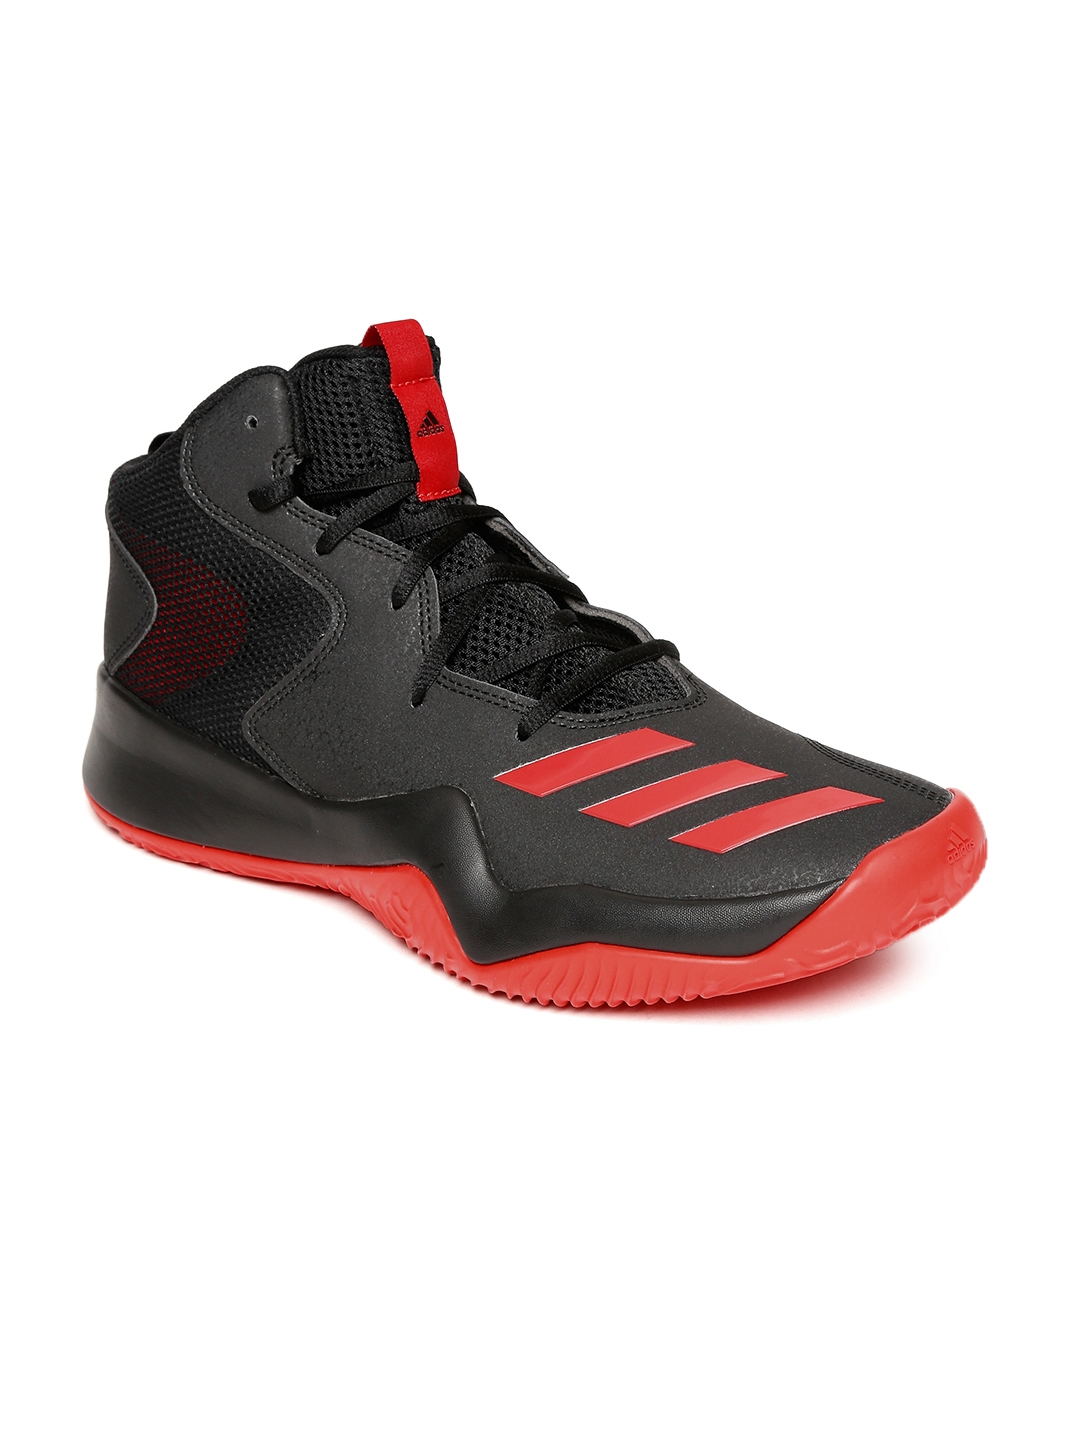 8be9127d21e8 ADIDAS Men Black   Red Synthetic Mid-Top CRAZY TEAM II Basketball Shoes